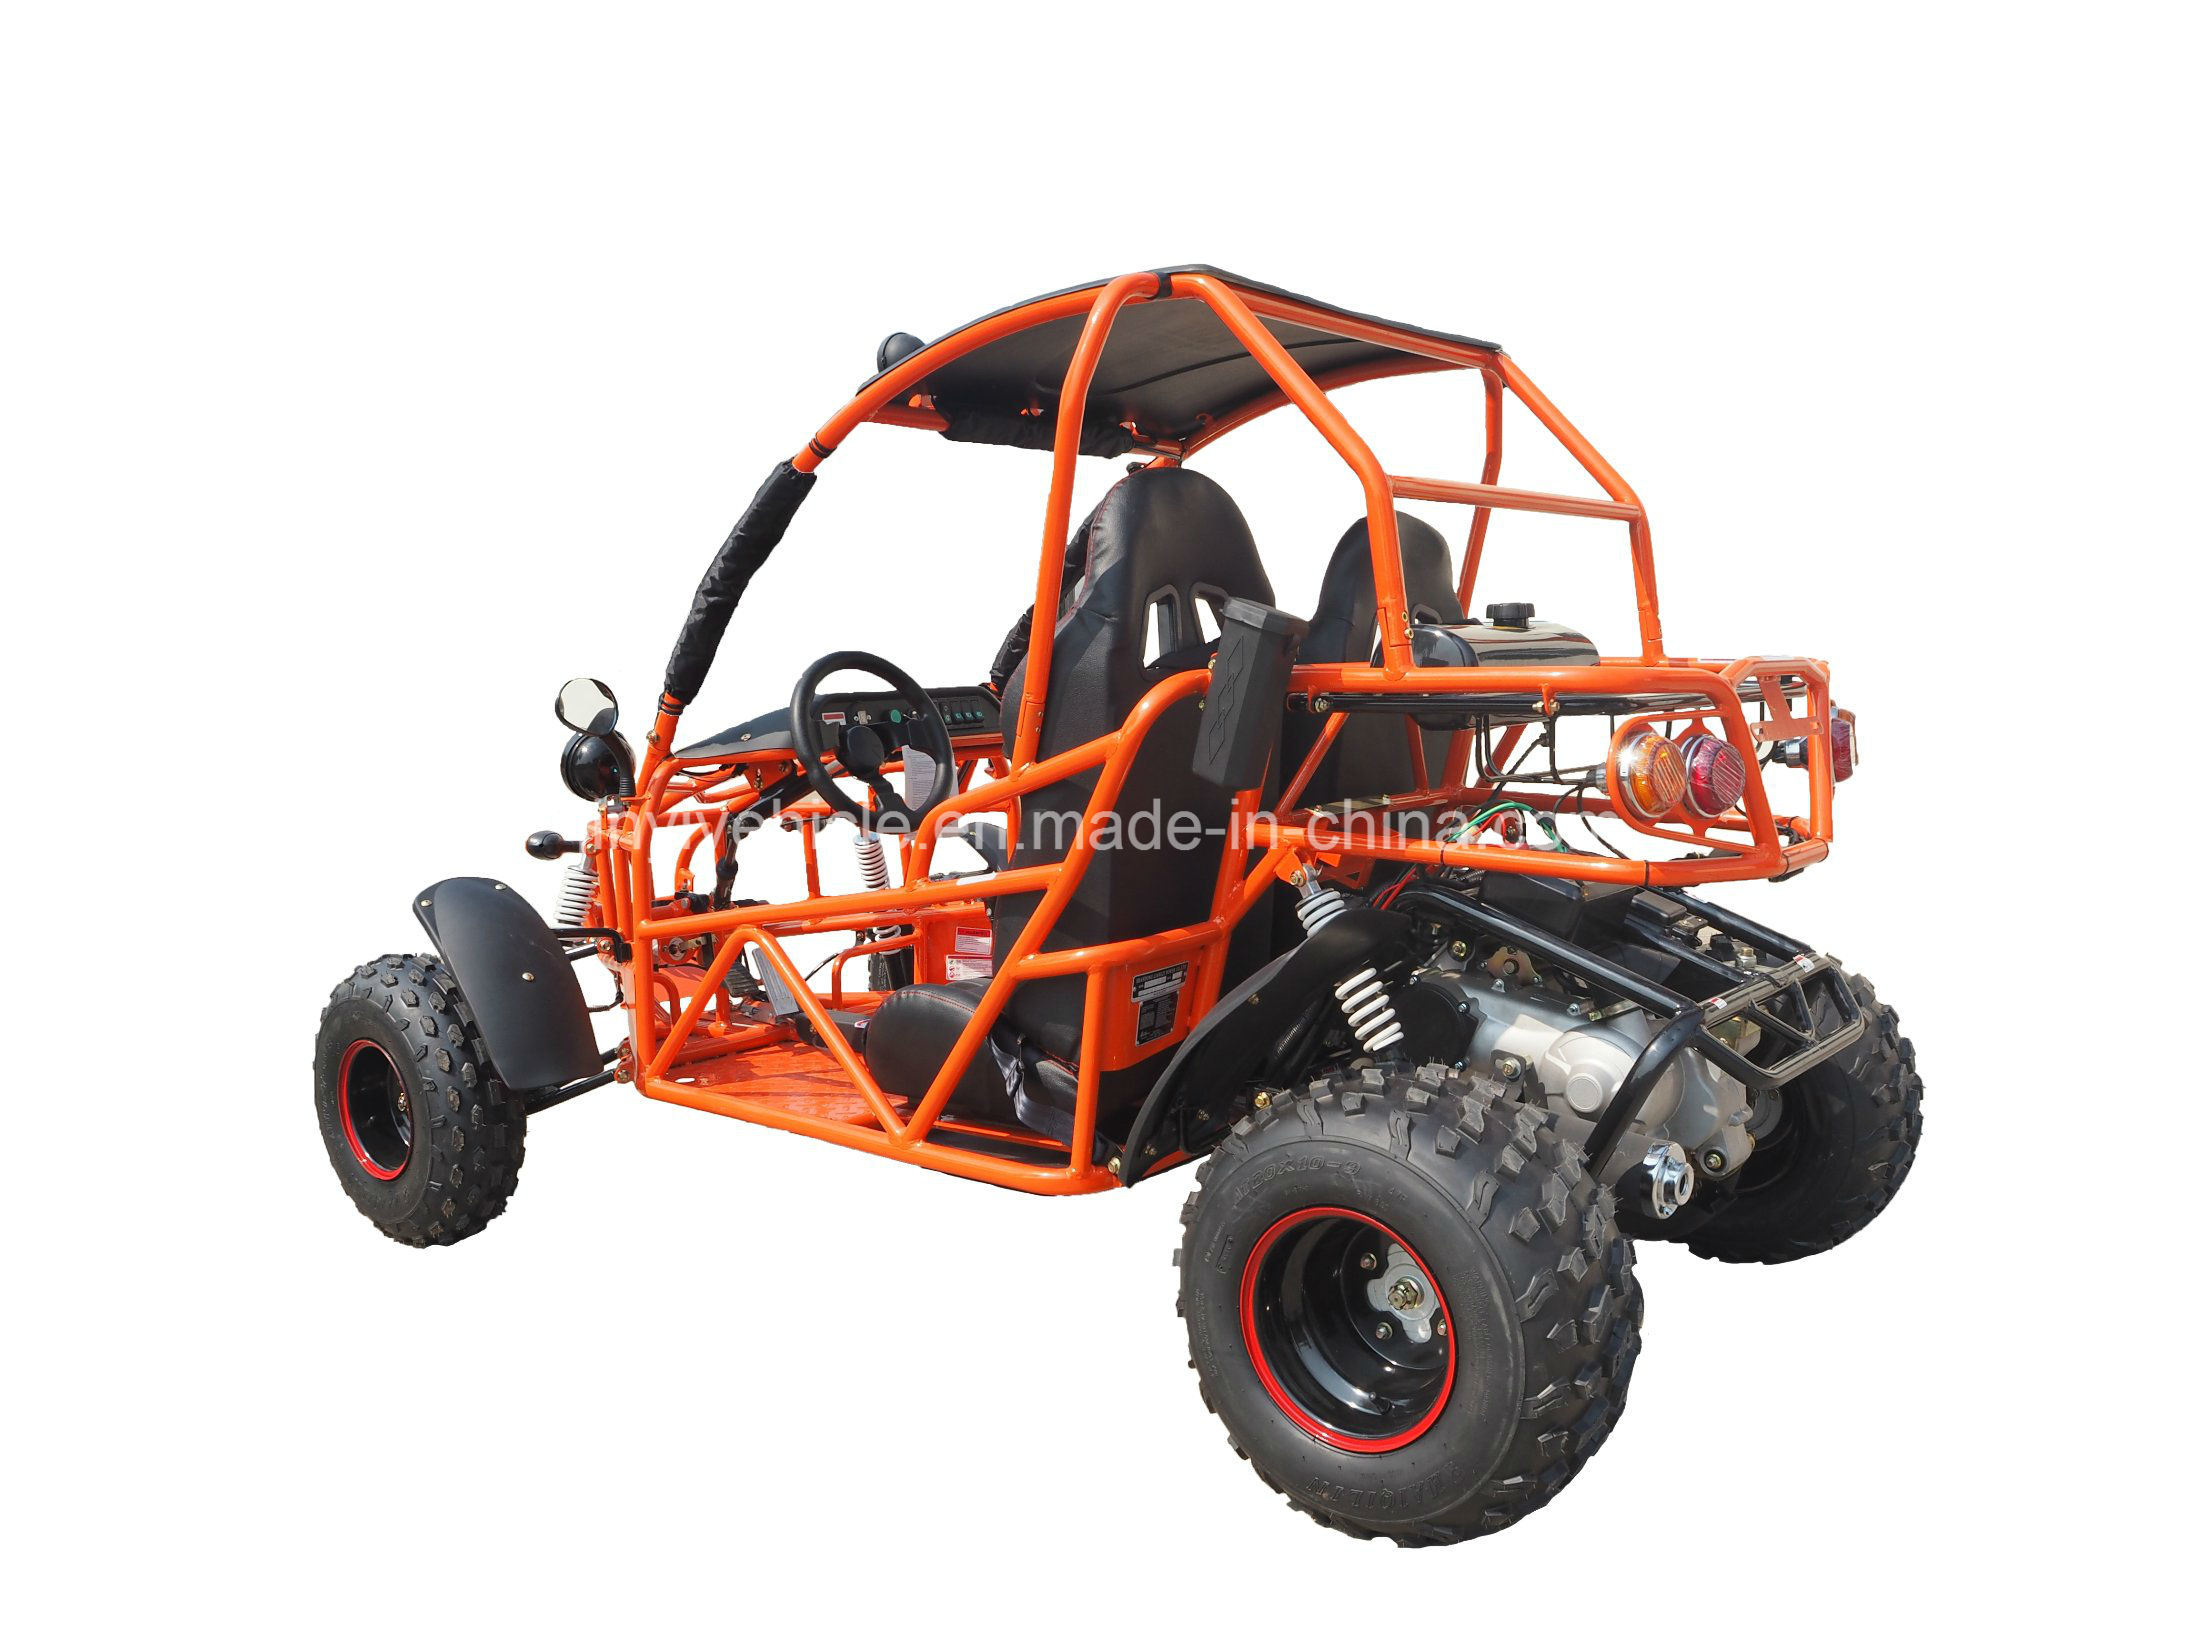 EPA Approved 800cc ATV Sport ATV